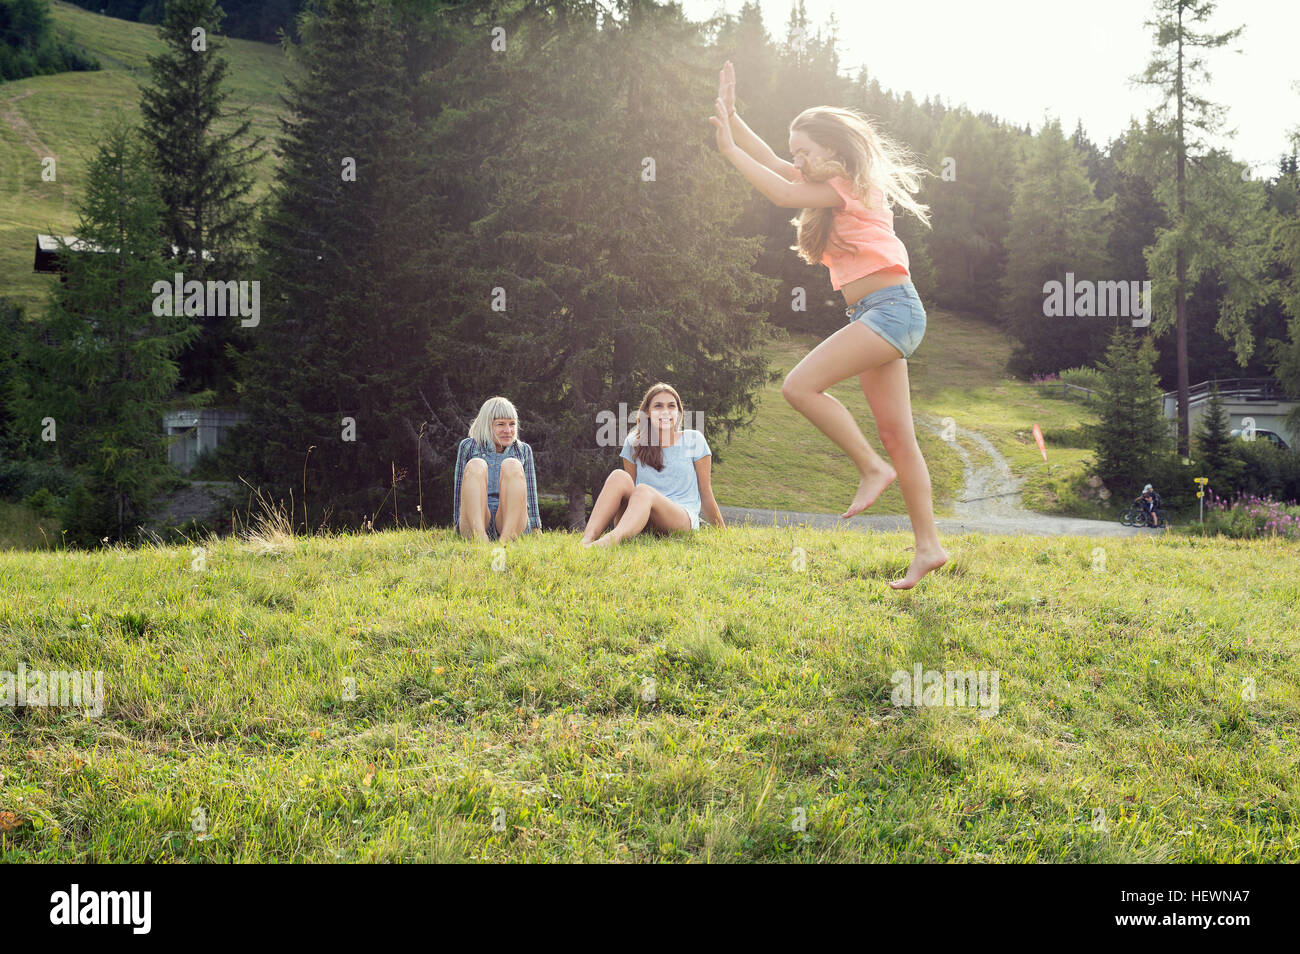 Young woman poised to cartwheel in field, Sattelbergalm, Tirol, Austria - Stock Image